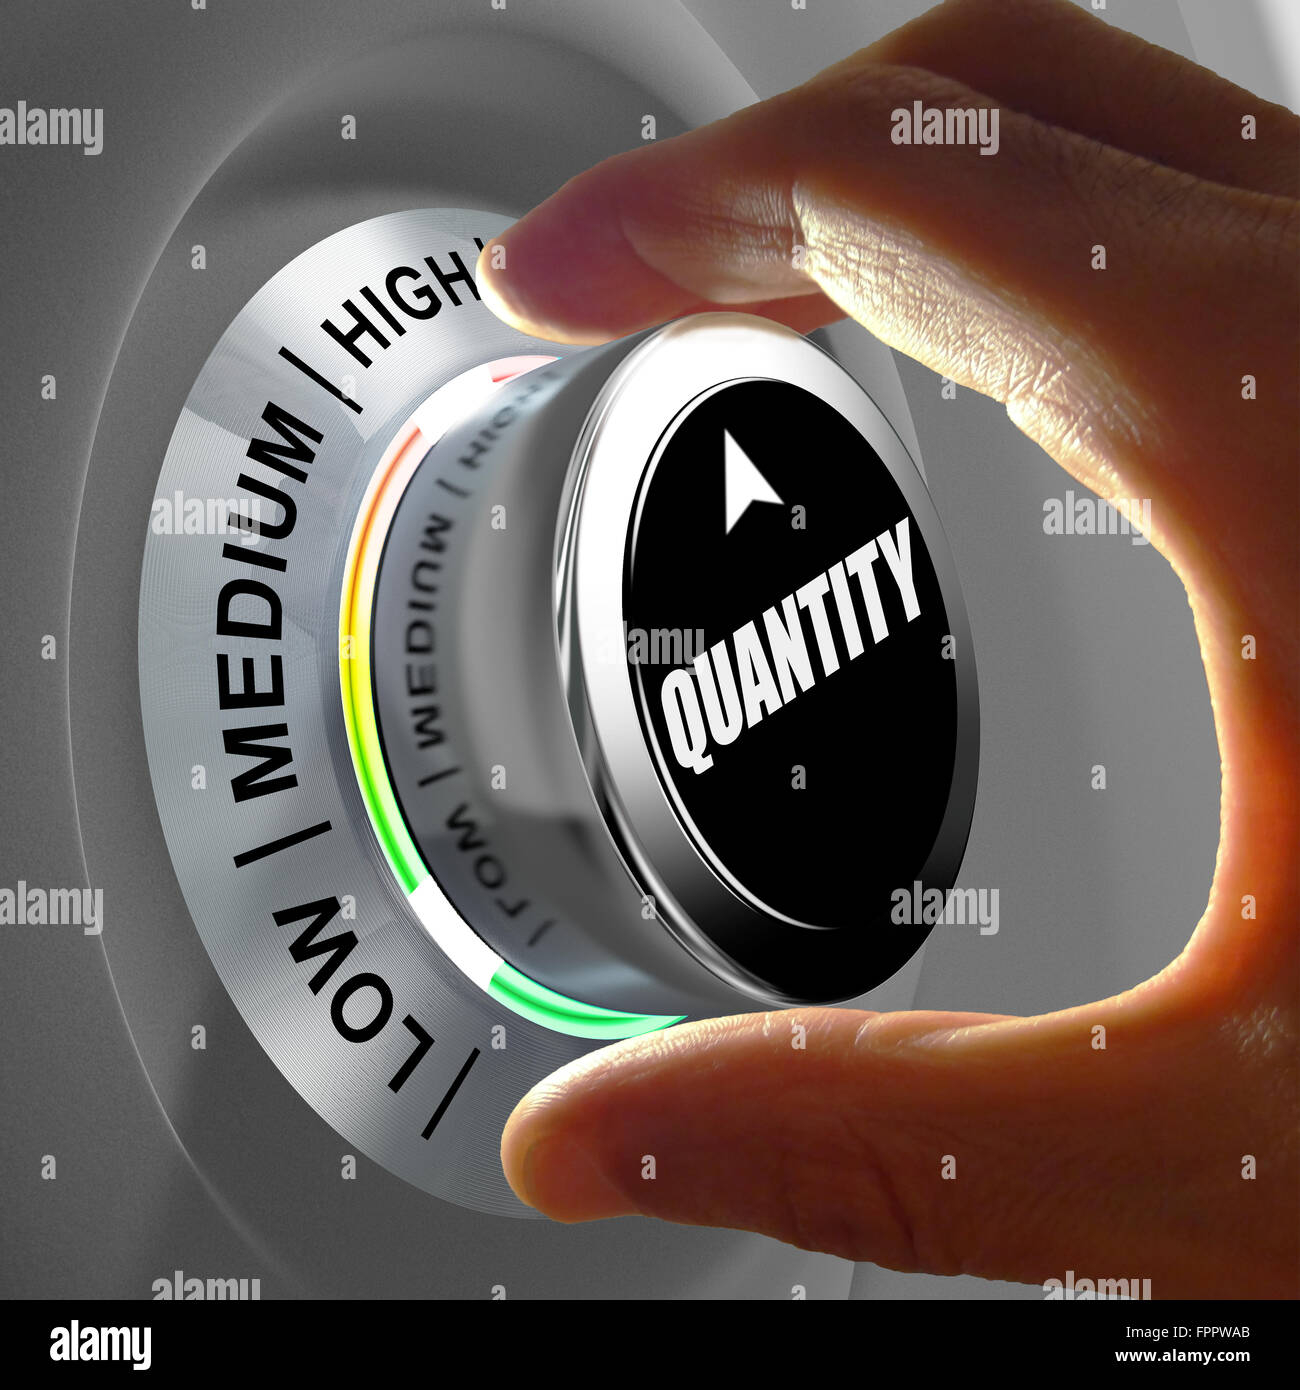 Hand adjusting the quantity. Concept illustration about optimization of items production or purchase. - Stock Image